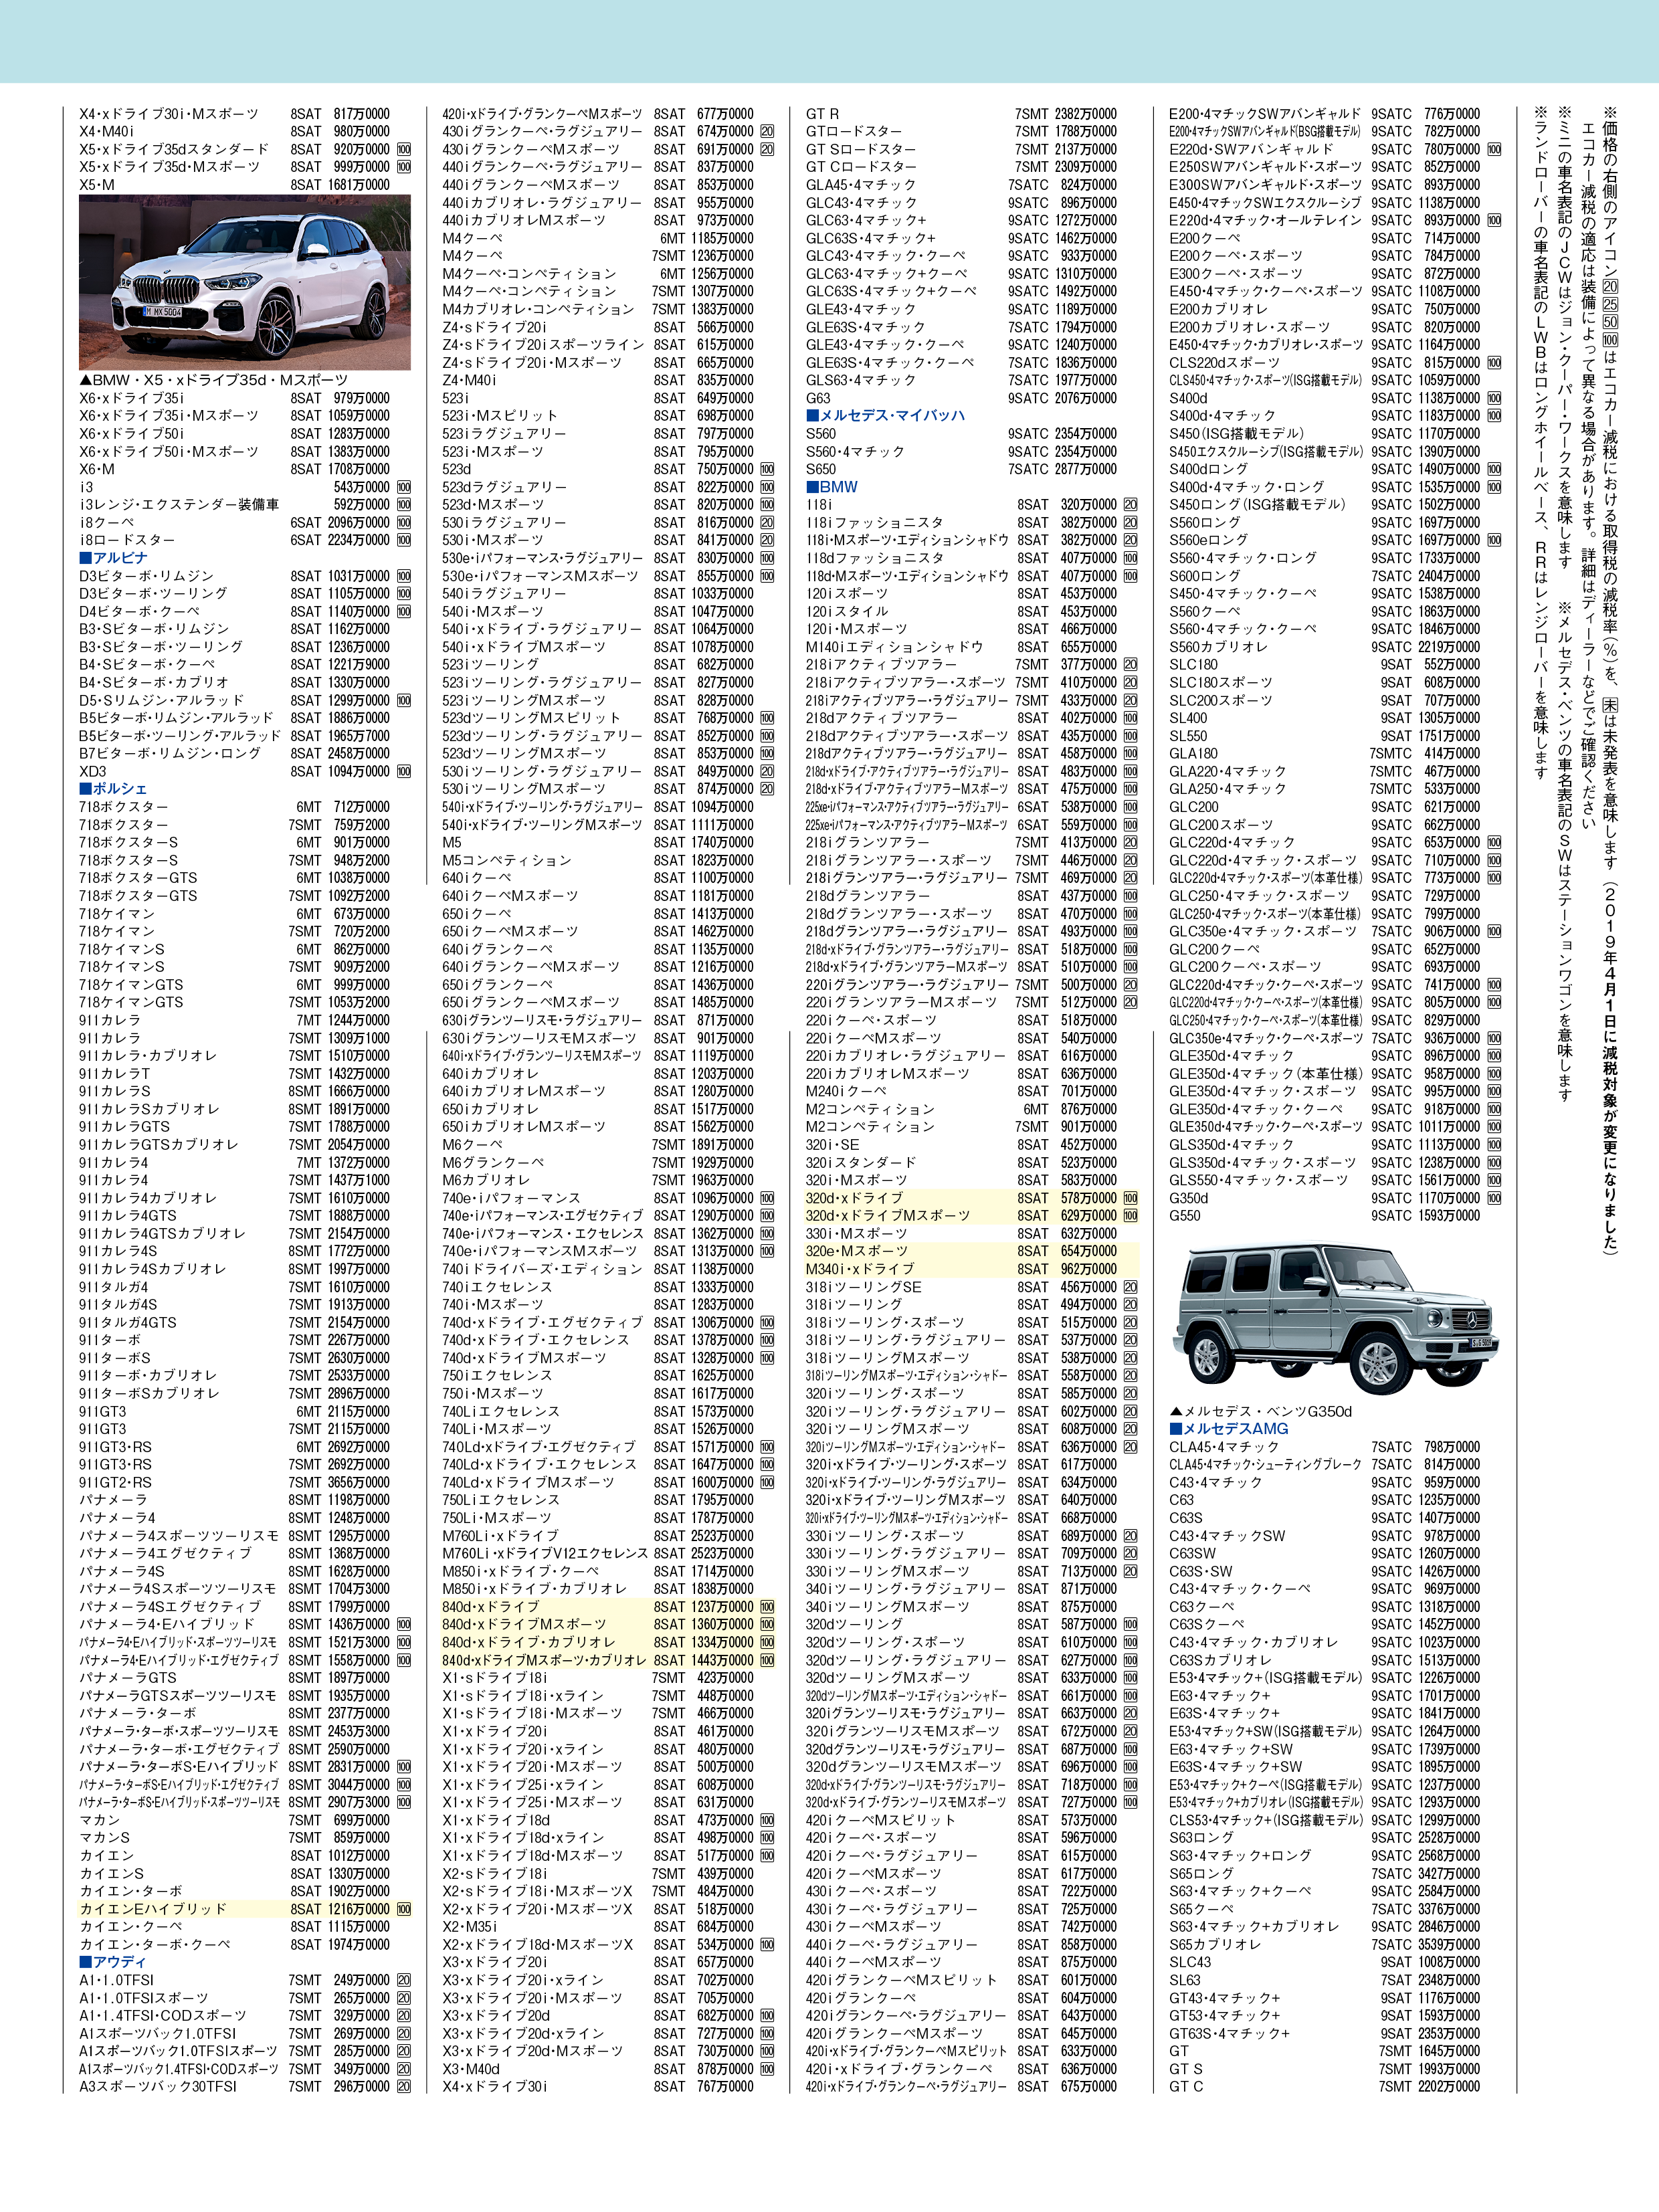 http://www.car-and-driver.jp/newcar/2019/06/21/a7fc046ab9142a7f3bbdde99670b3e32872e9abd.png